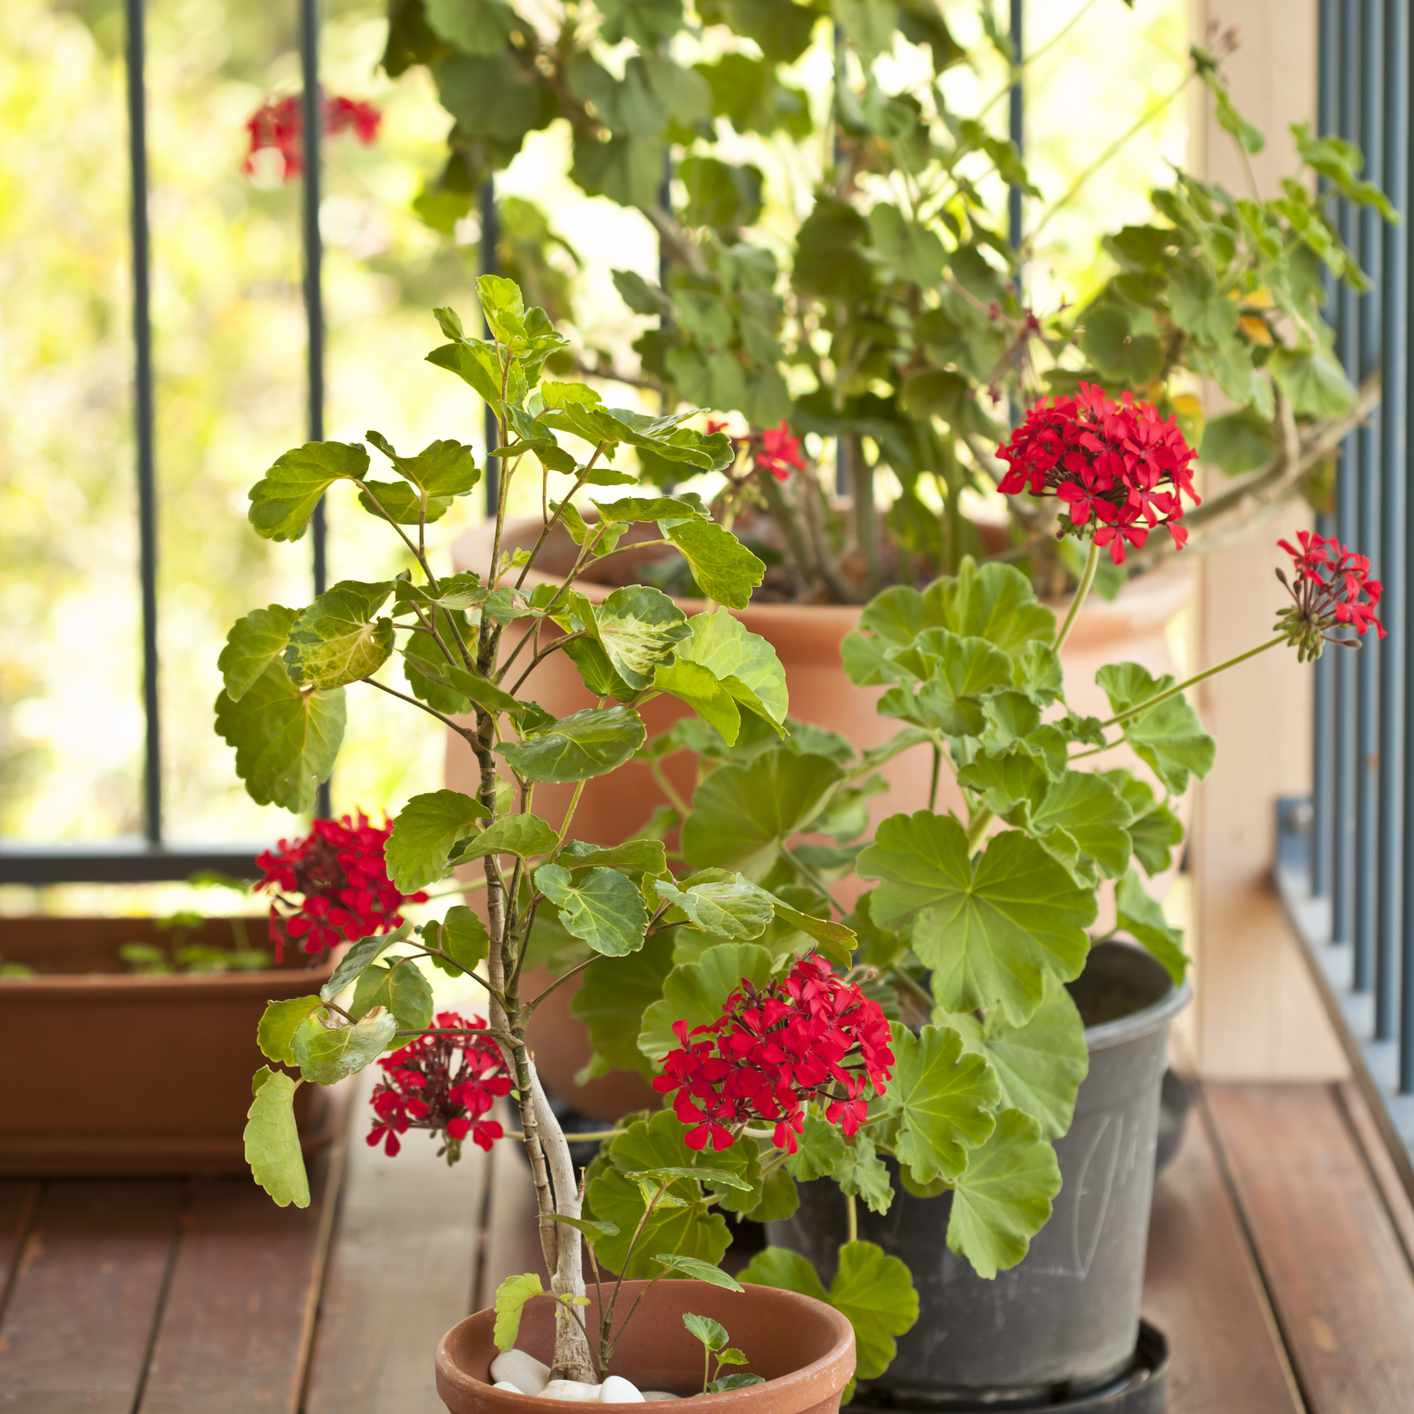 Potted geraniums on a deck.